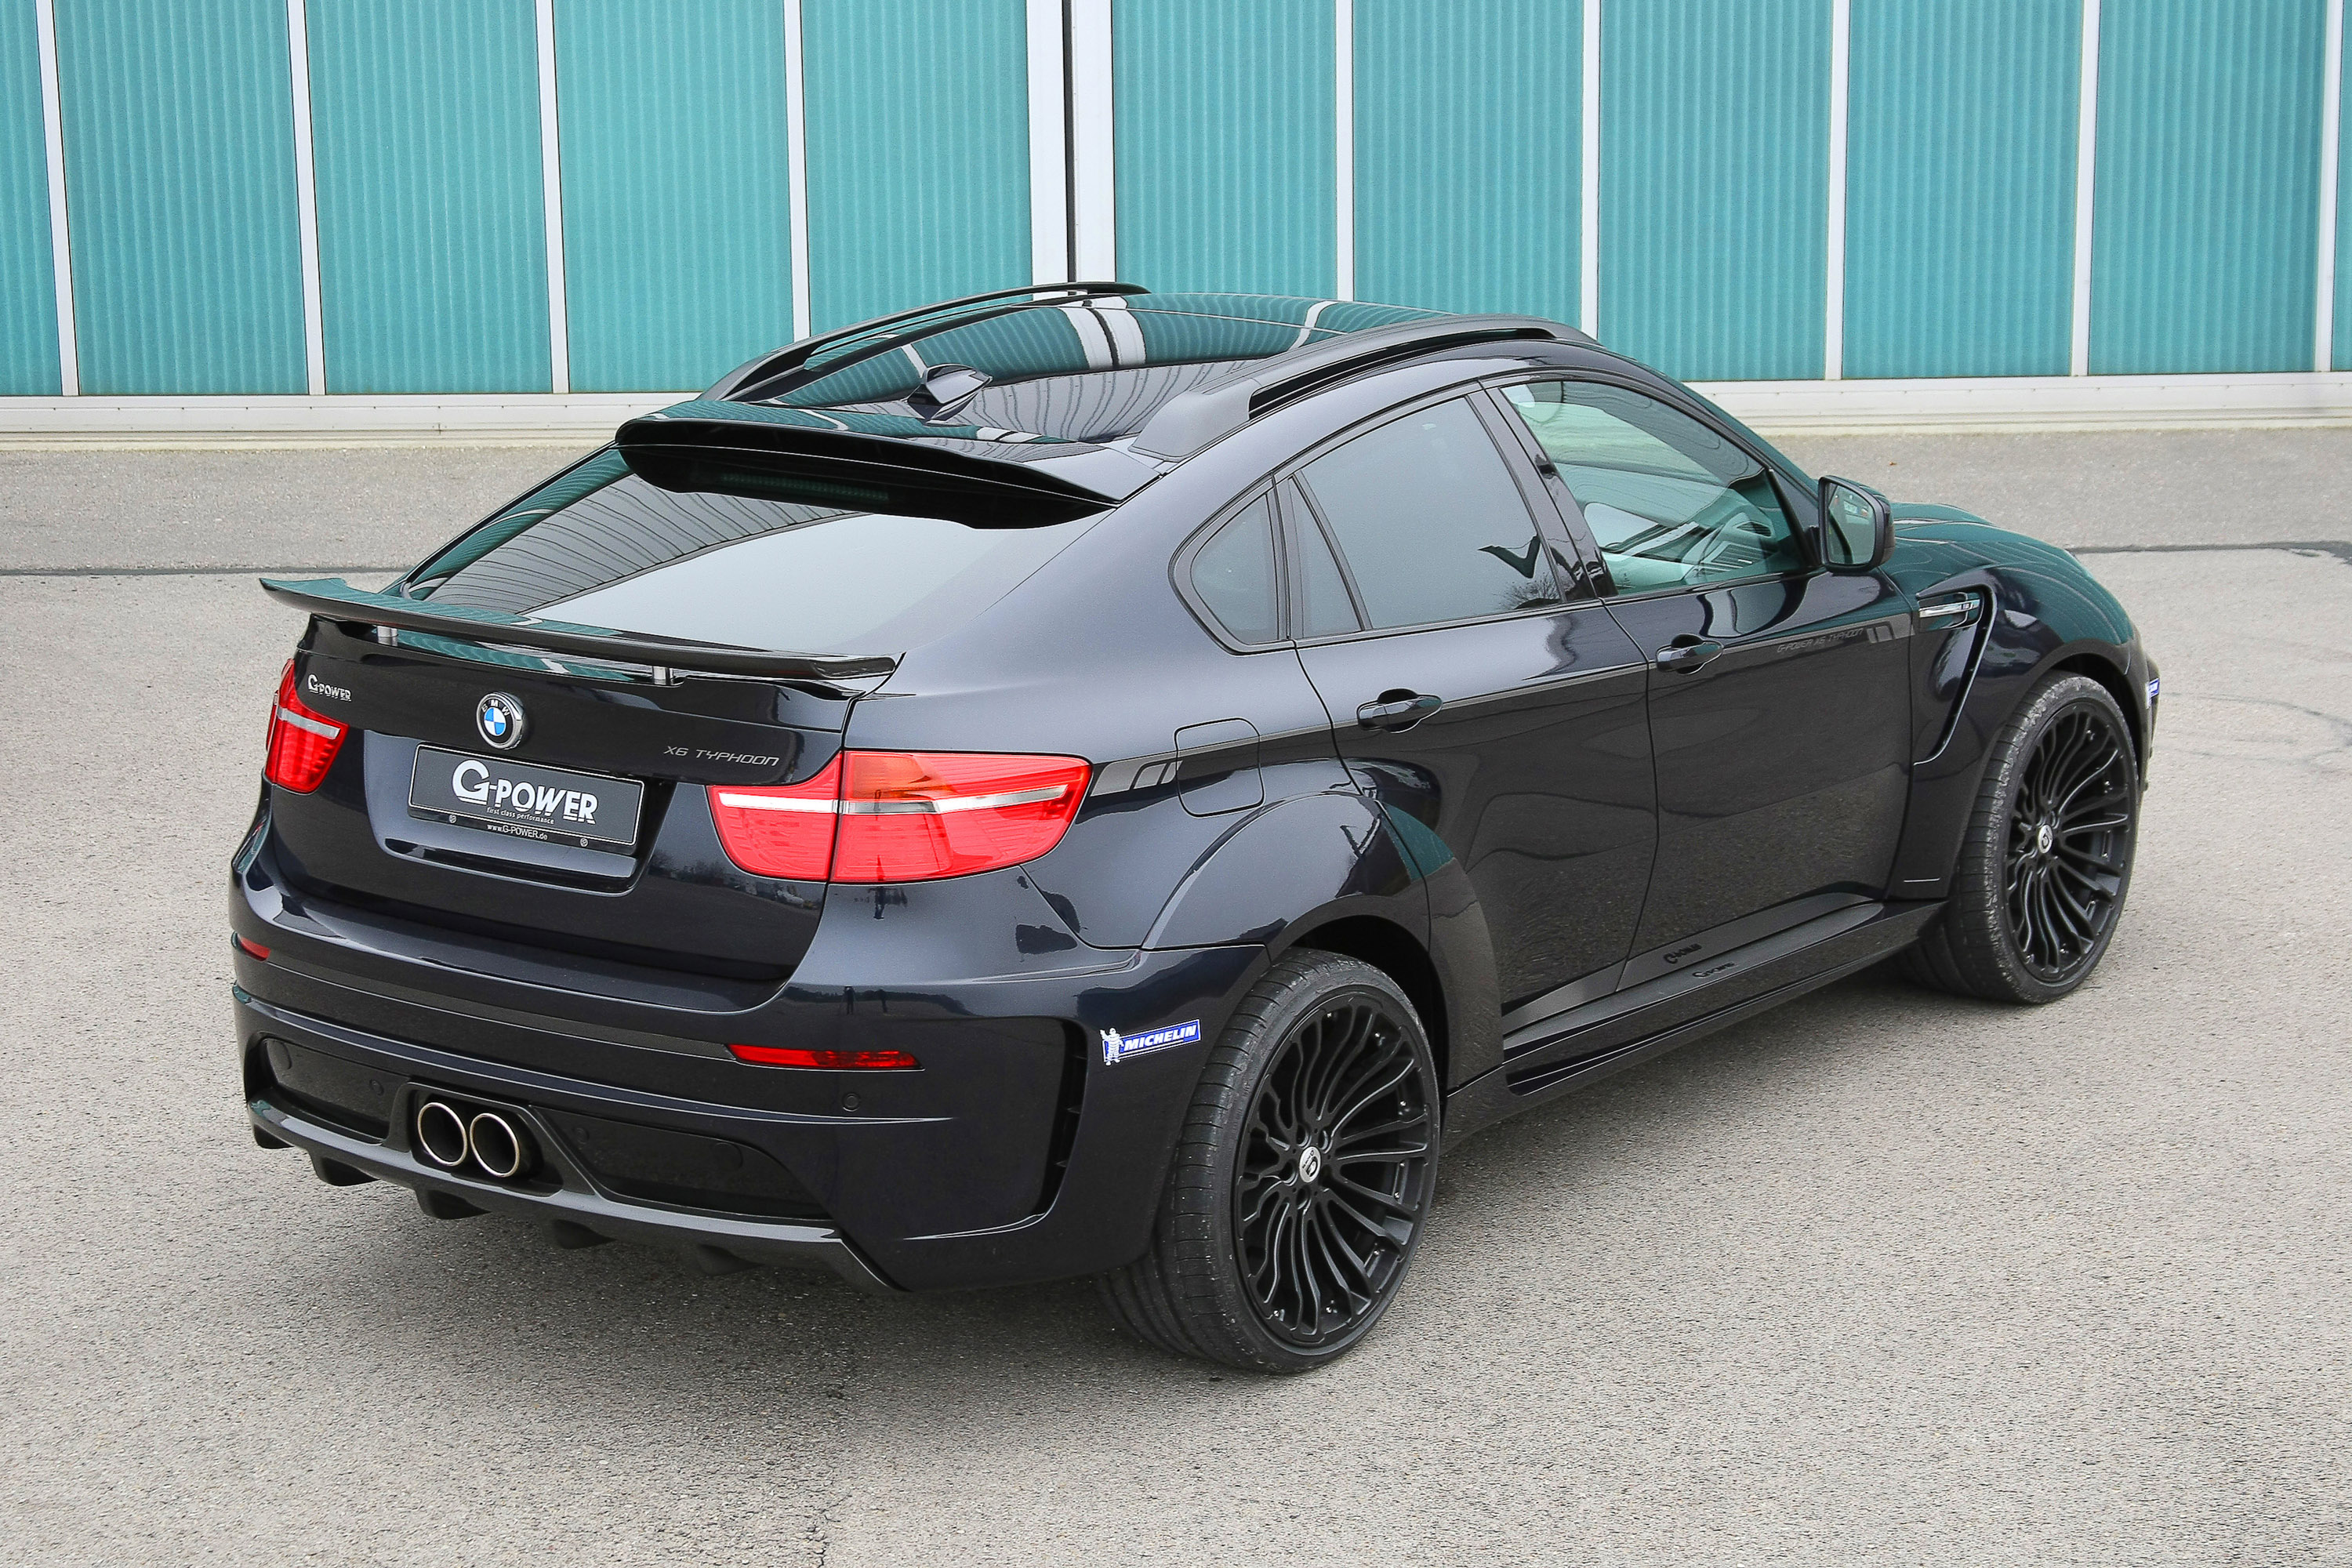 G-POWER BMW X6 M Typhoon Wide Body - Picture 61510